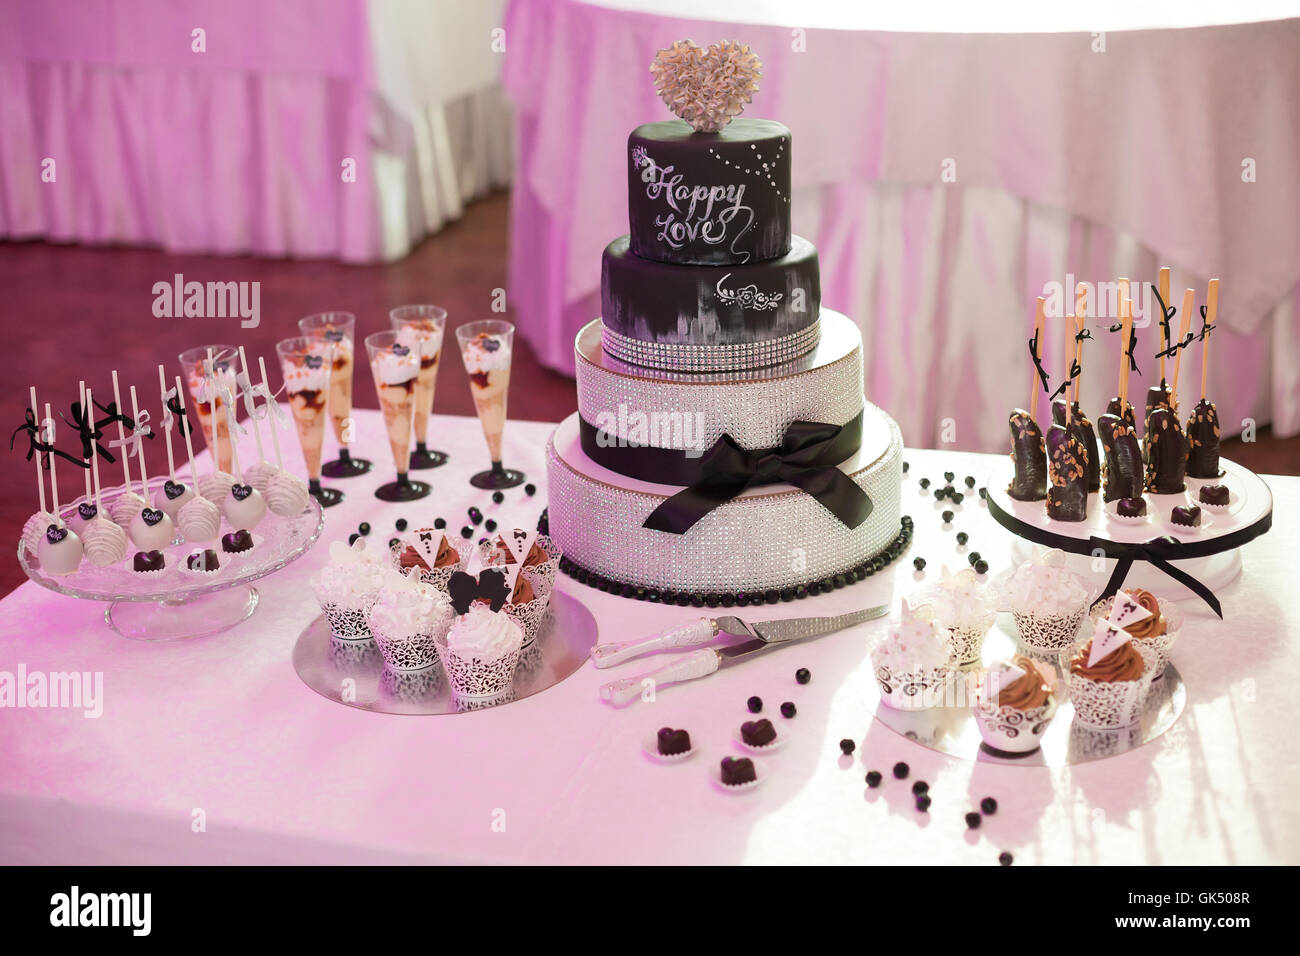 Wedding Cake Set Up Stock Photos & Wedding Cake Set Up Stock Images ...